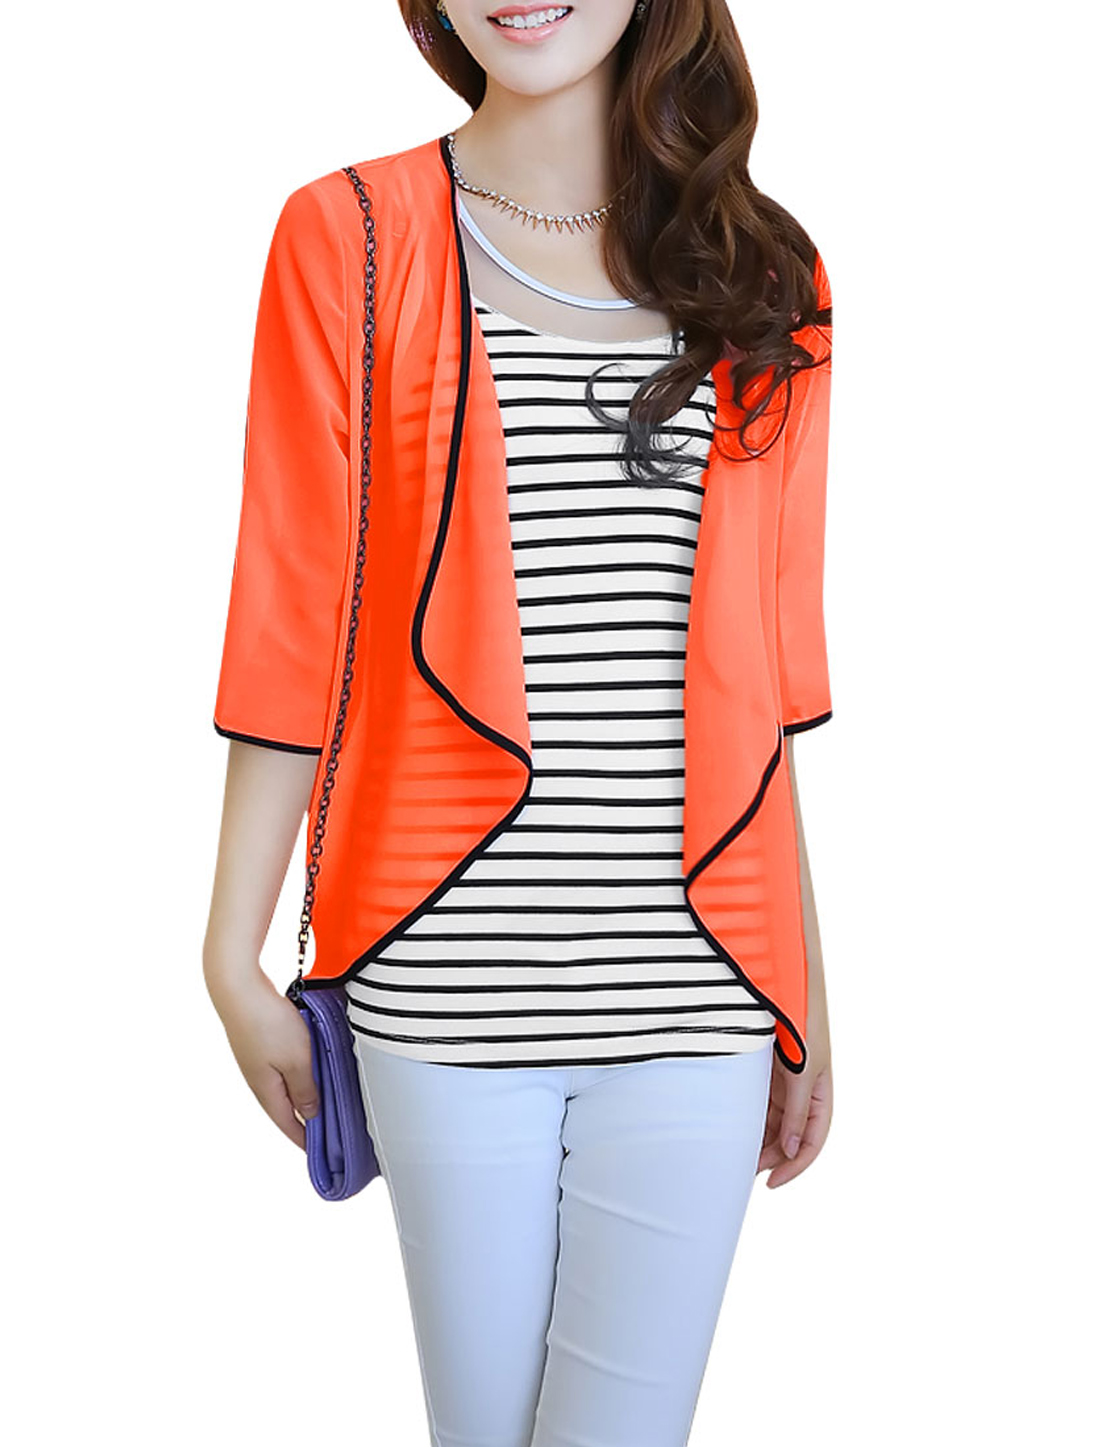 Ladies Front Opening Cardigan & Stripes Tank Top Orange White S